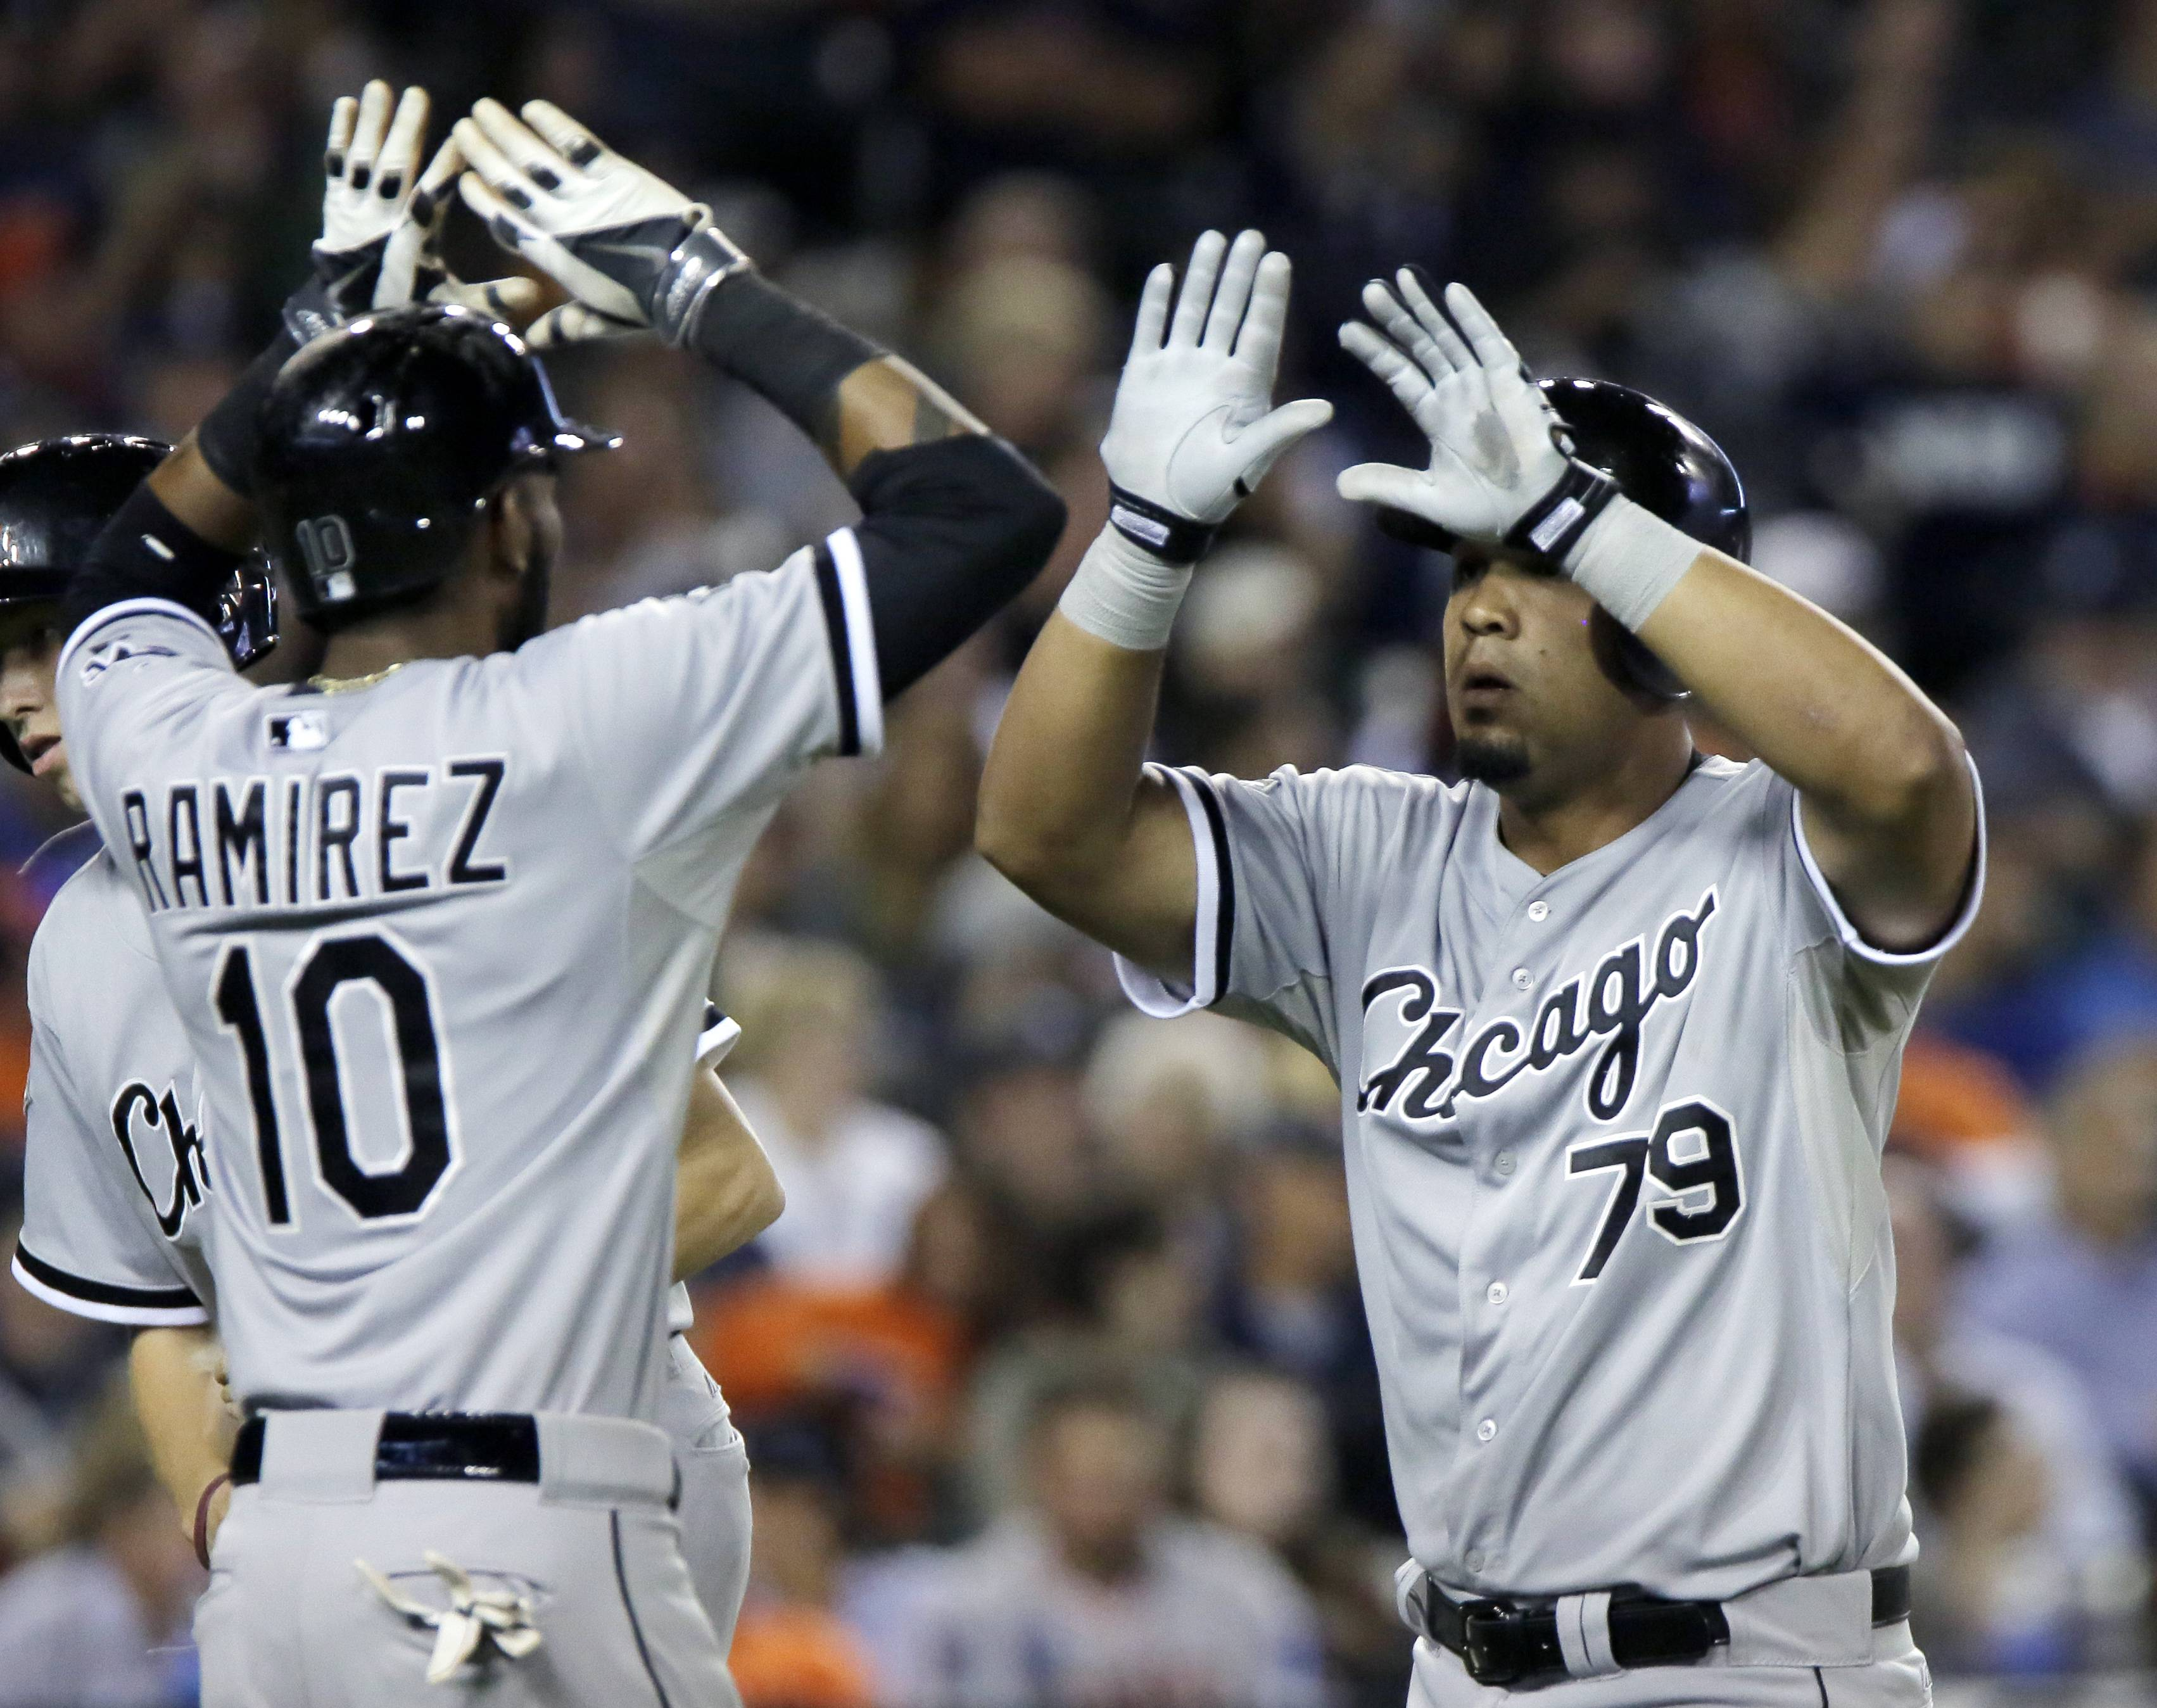 Chicago White Sox's Jose Abreu is congratulated by Alexei Ramirez after hitting a two run home run off of Detroit Tigers pitcher Joakim Soria during the seventh inning of a baseball game Tuesday, July 29, 2014, in Detroit.